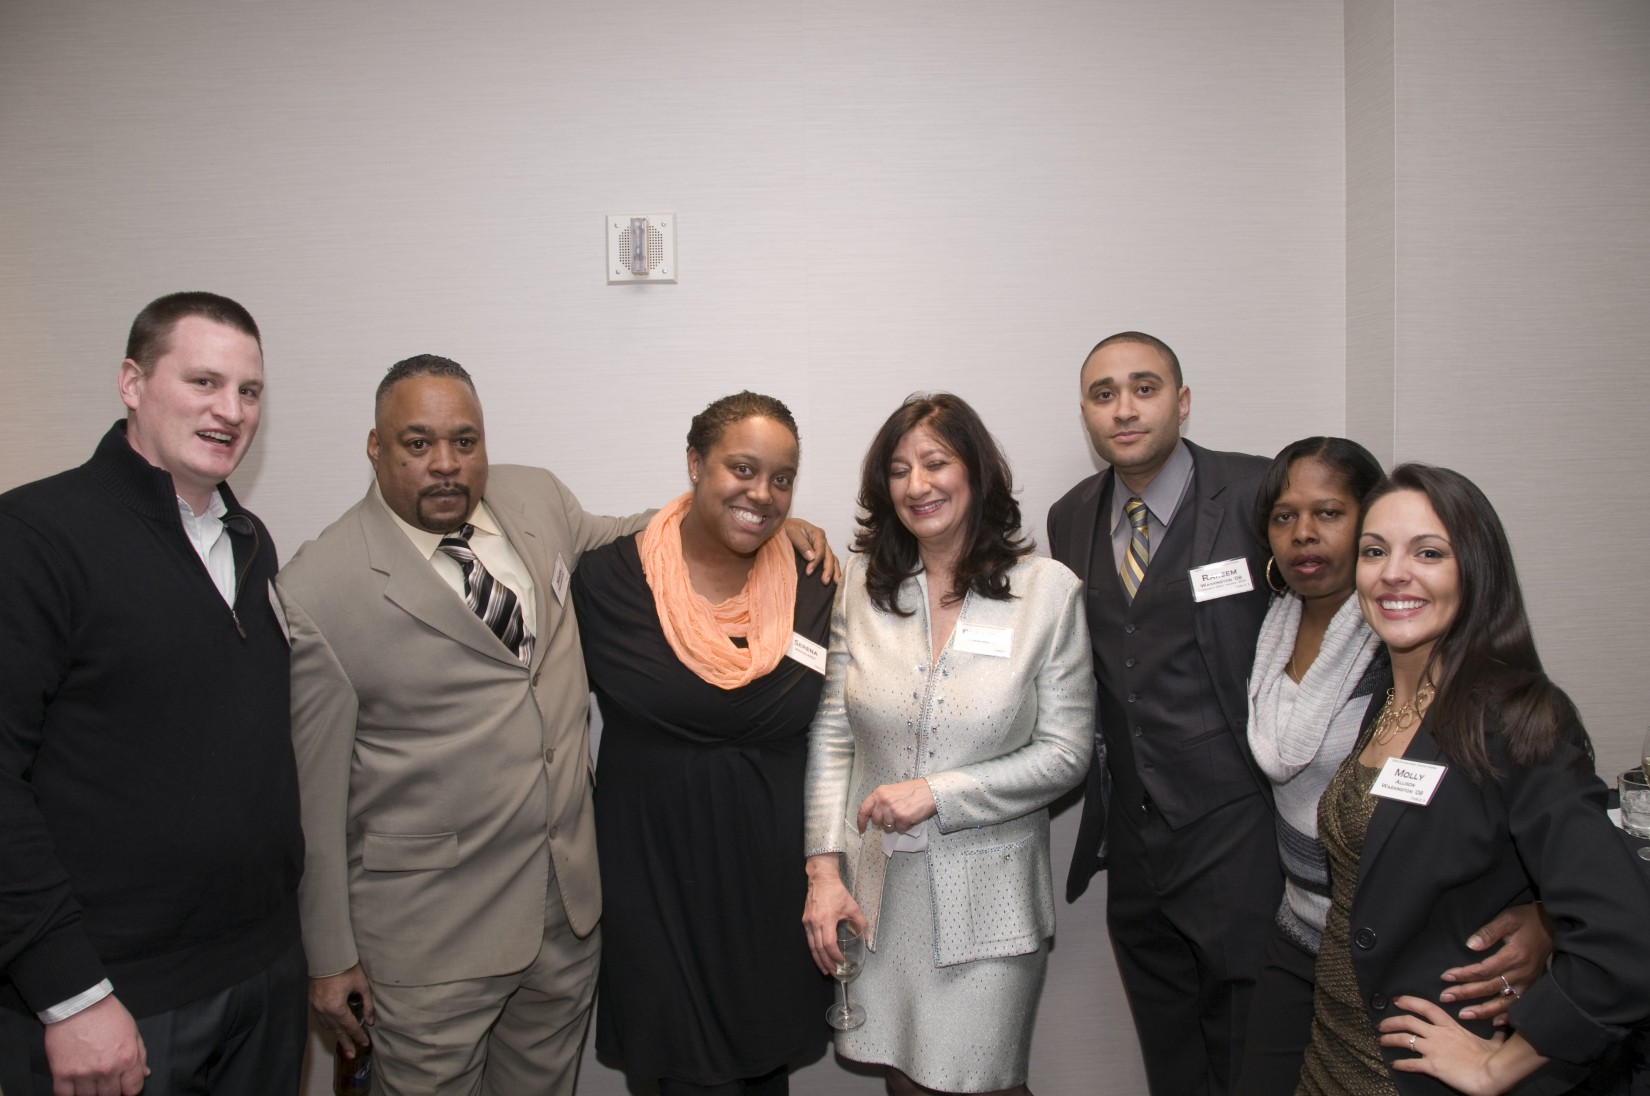 Rakeem Washington '08 (third from right) and Molly Allison Washington '08 (far right).